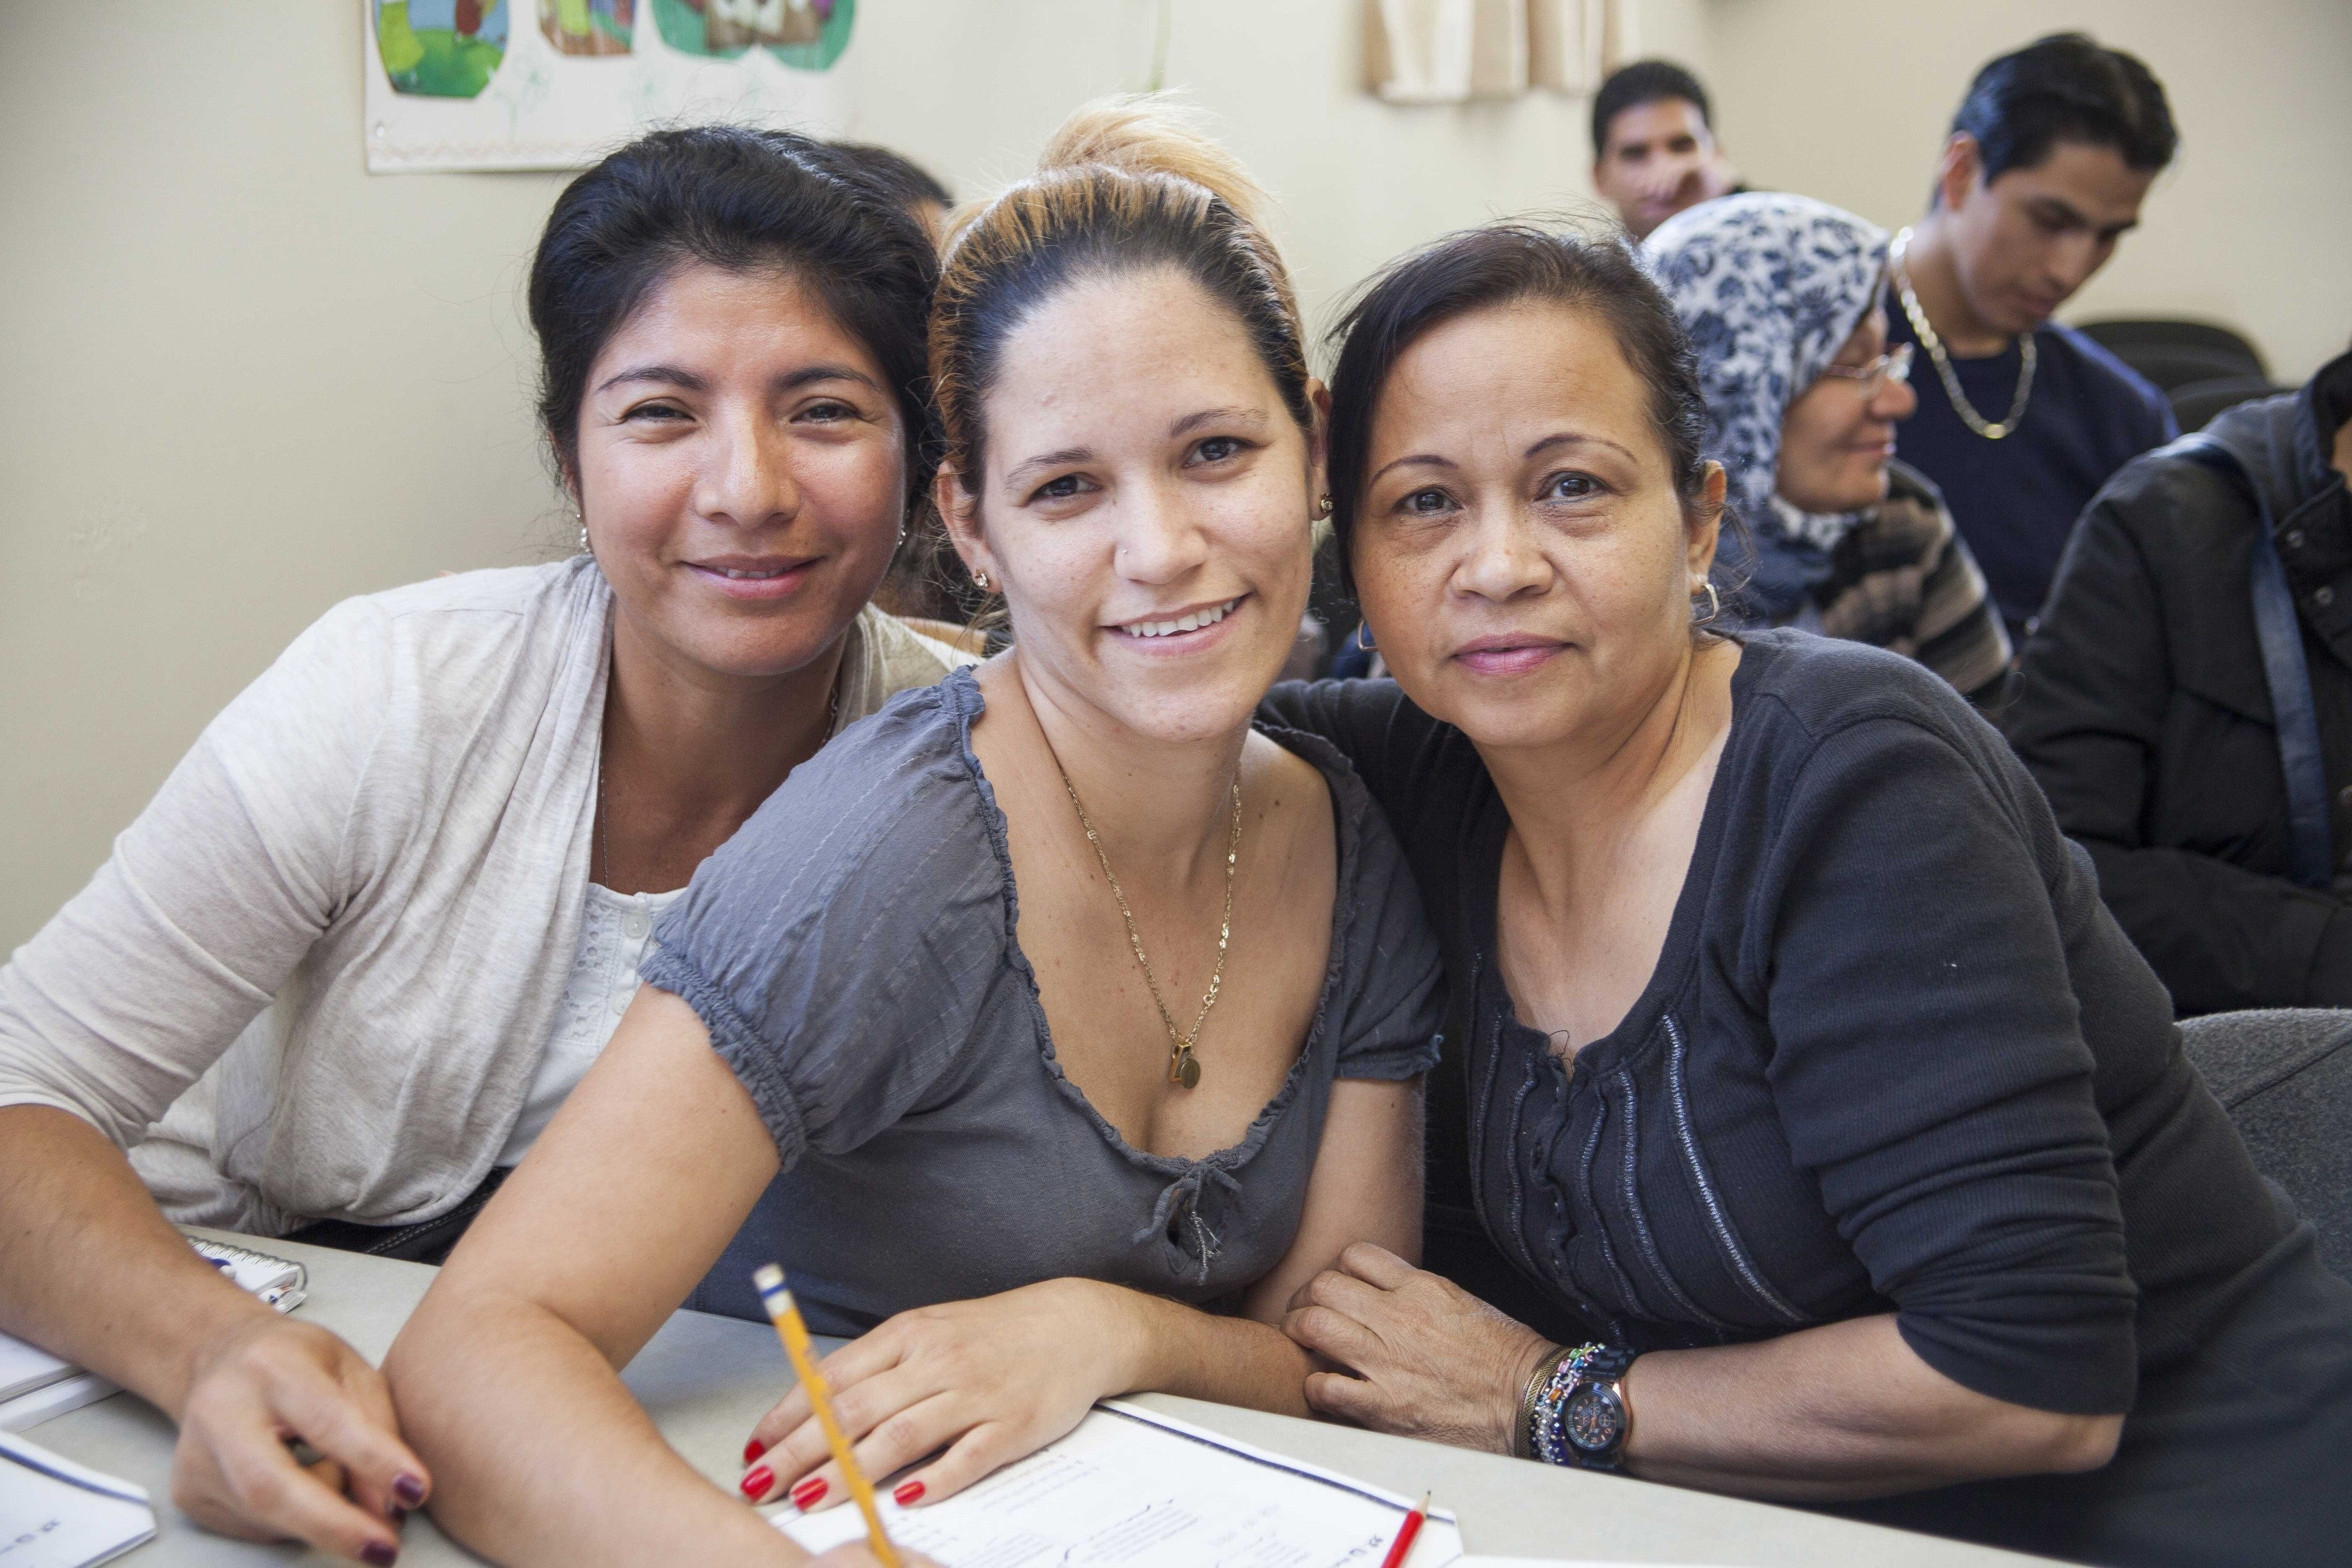 English Classes for Refugees